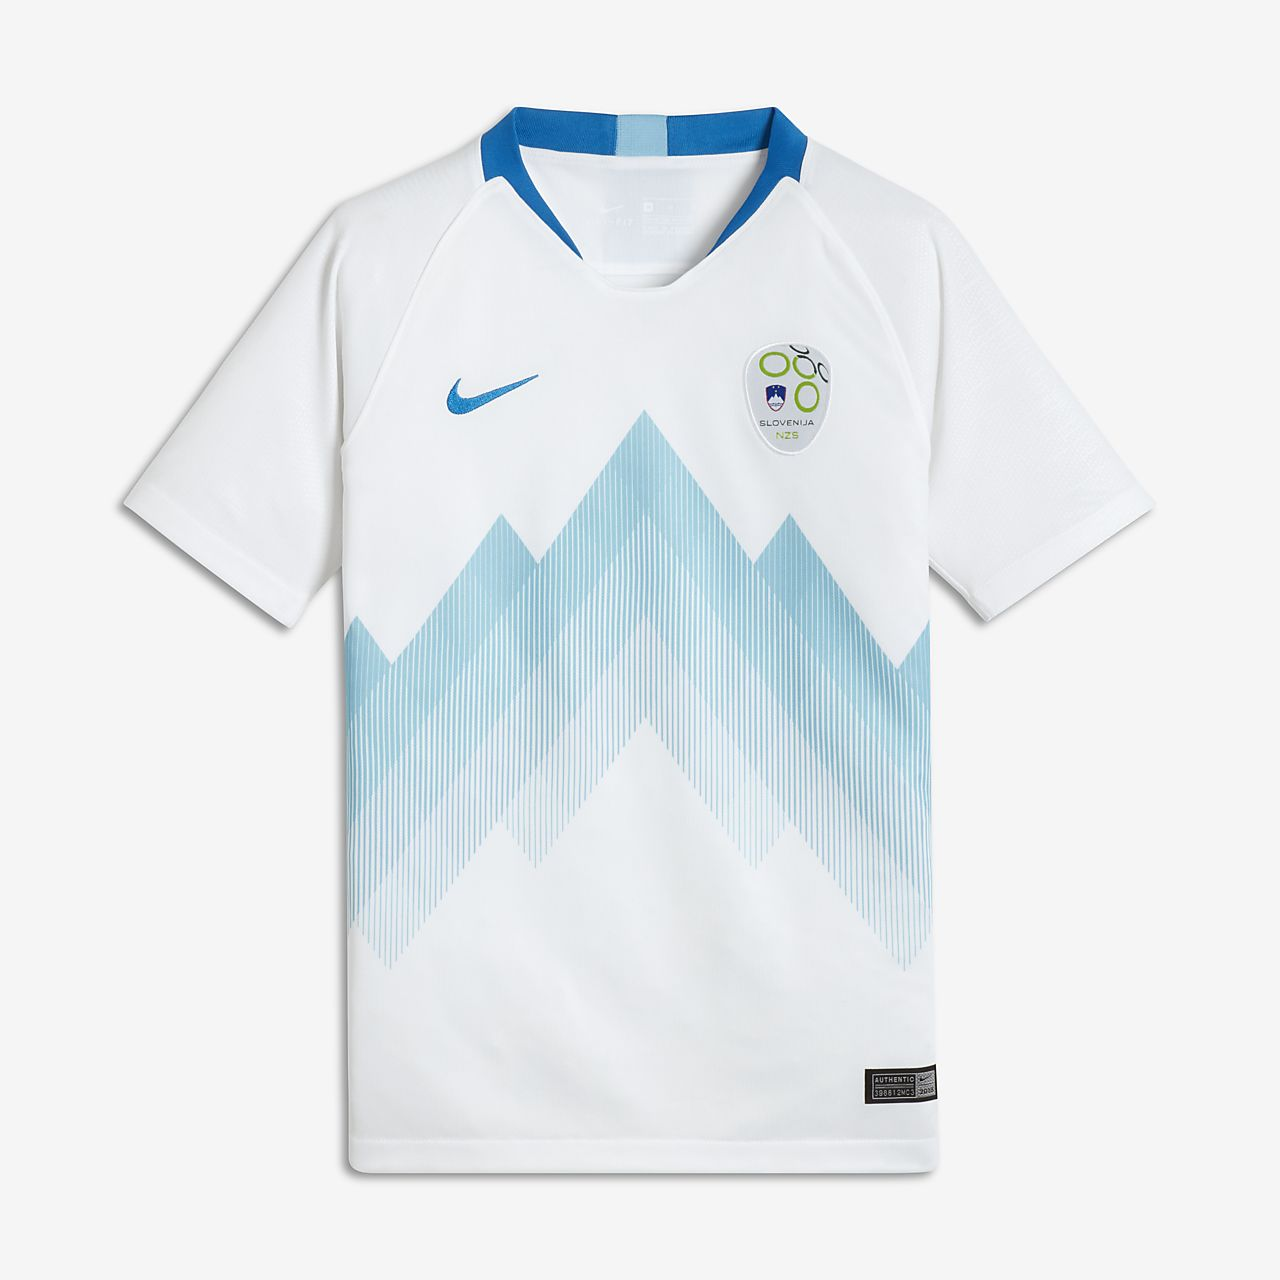 2018 Slovenia Stadium Home fotballdrakt for store barn